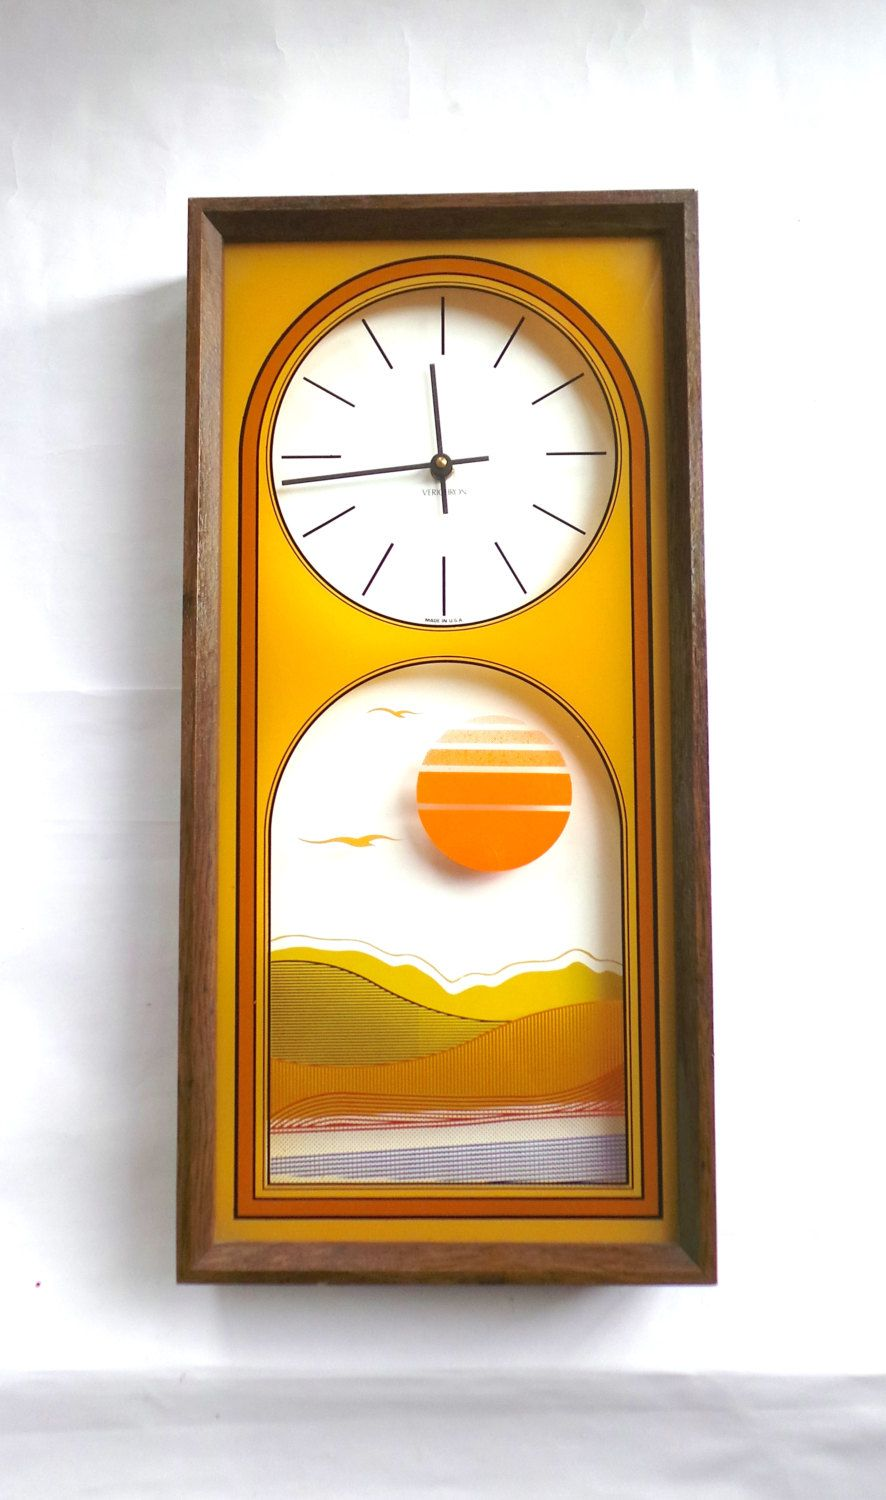 1970s wall clock by verichron shadowbox sunset clock groovy wall clock by verichron shadowbox sunset clock groovy clocks decor reverse glass painted clocks by lizzietishvintage on etsy amipublicfo Image collections